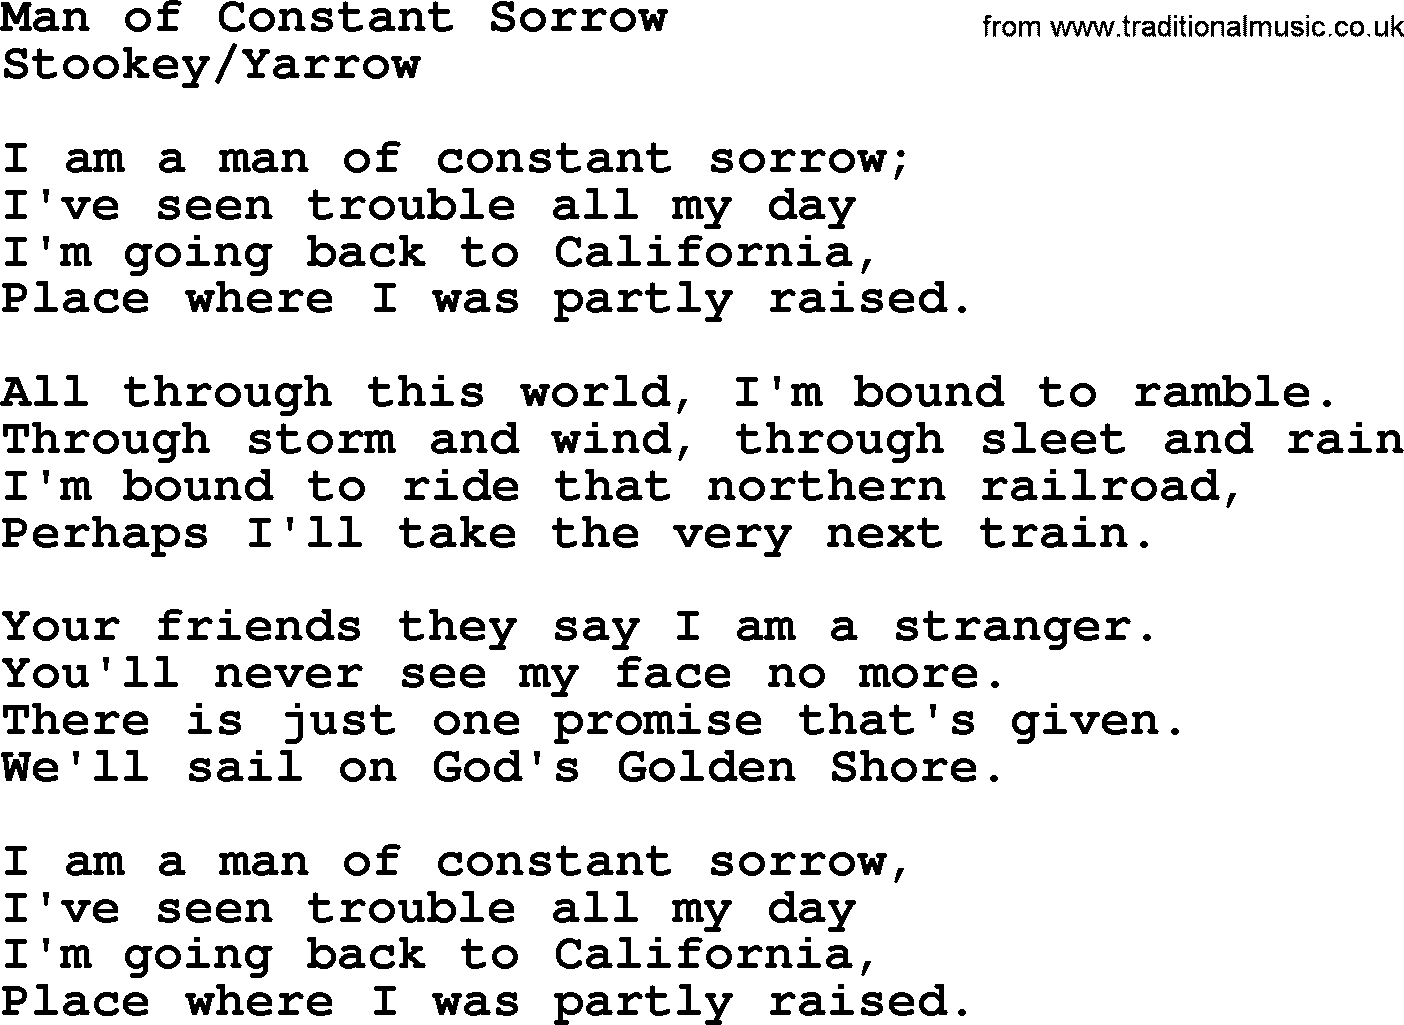 Peter Paul And Mary Song Man Of Constant Sorrow Lyrics